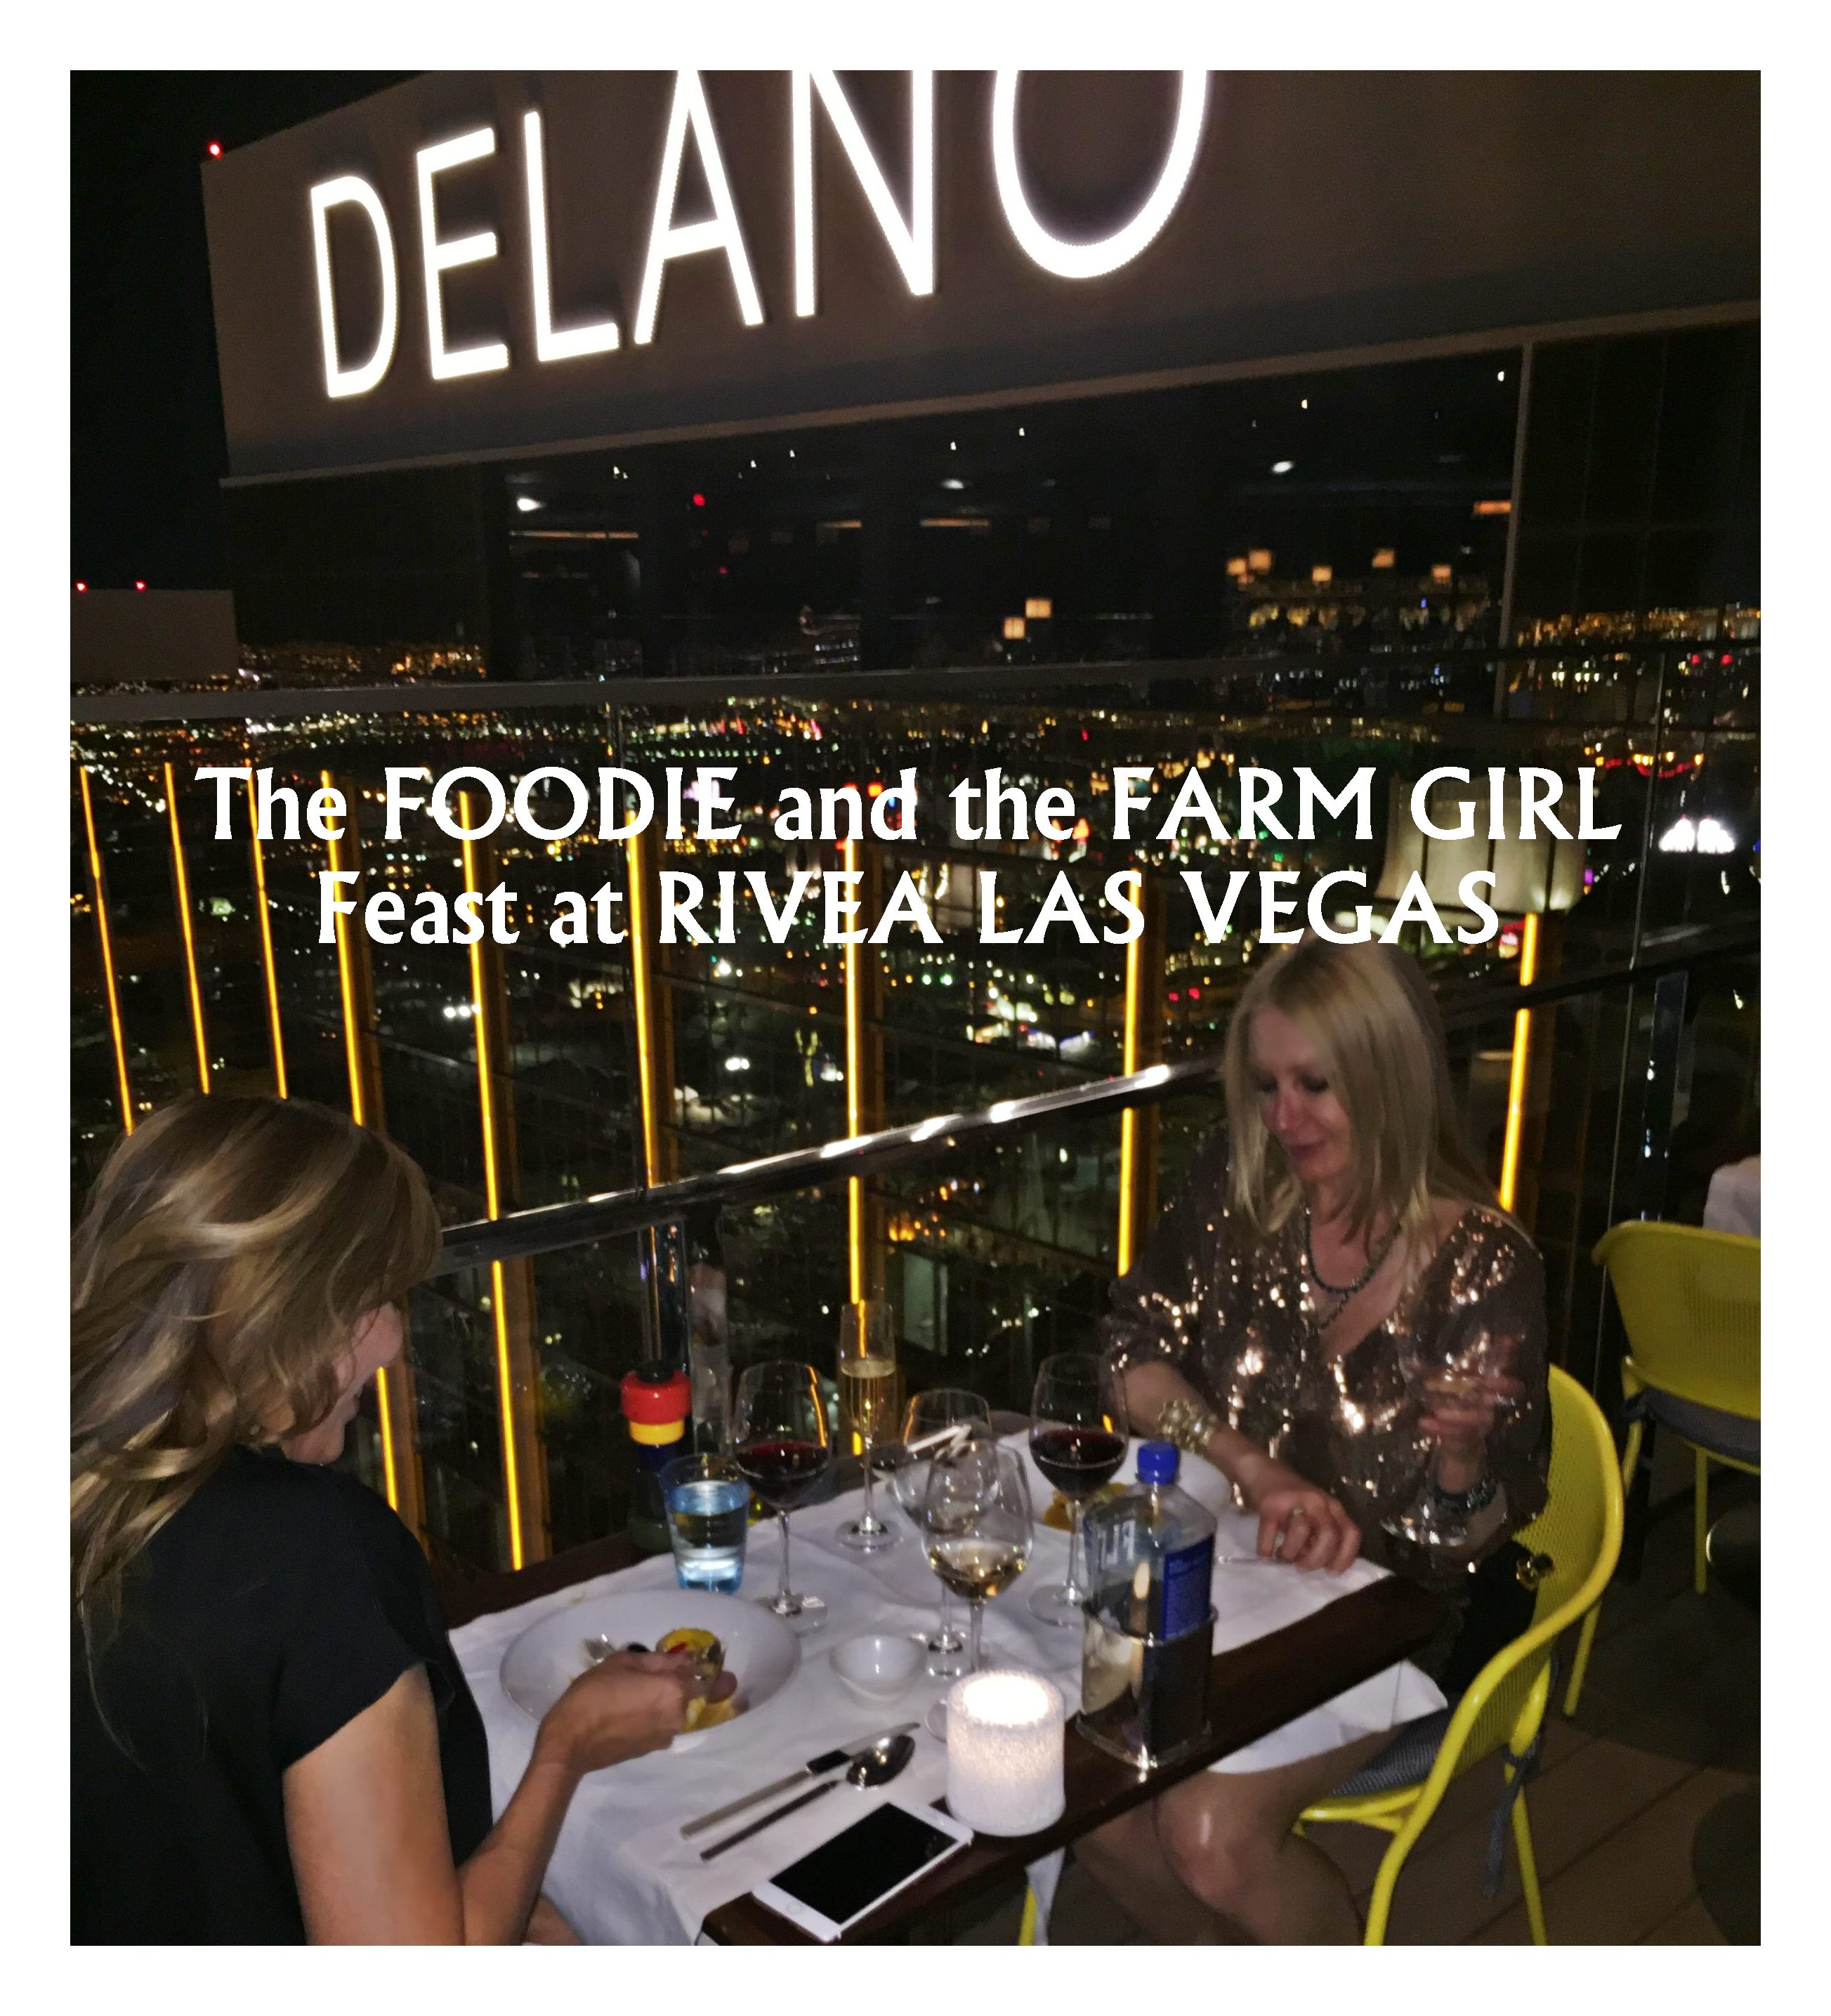 WheatFieldstoWonderlandThe FOODIe and the FARM GIRL Feast ...